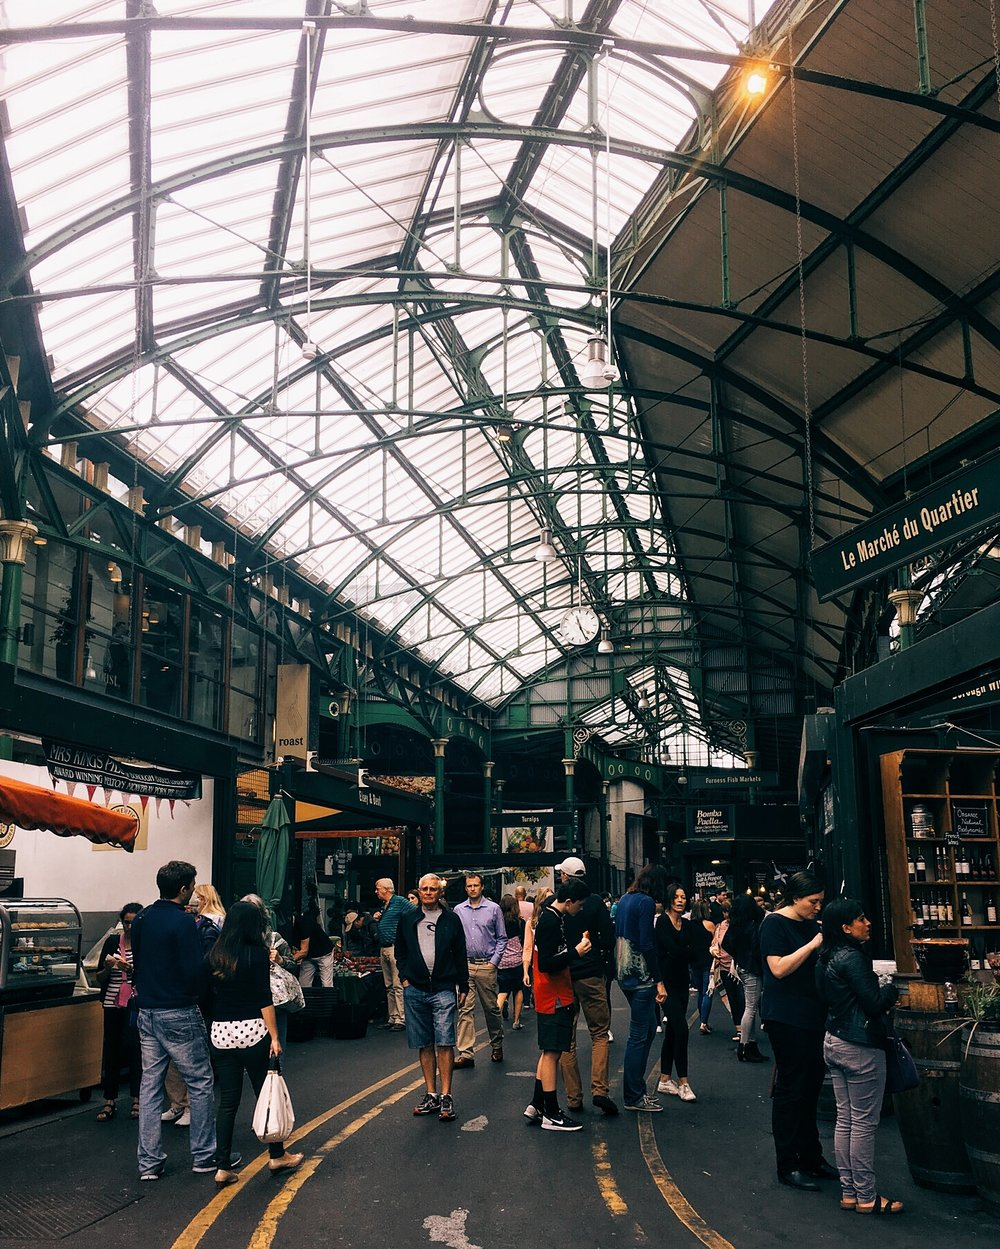 Borough Market, London, England, markets, matlag